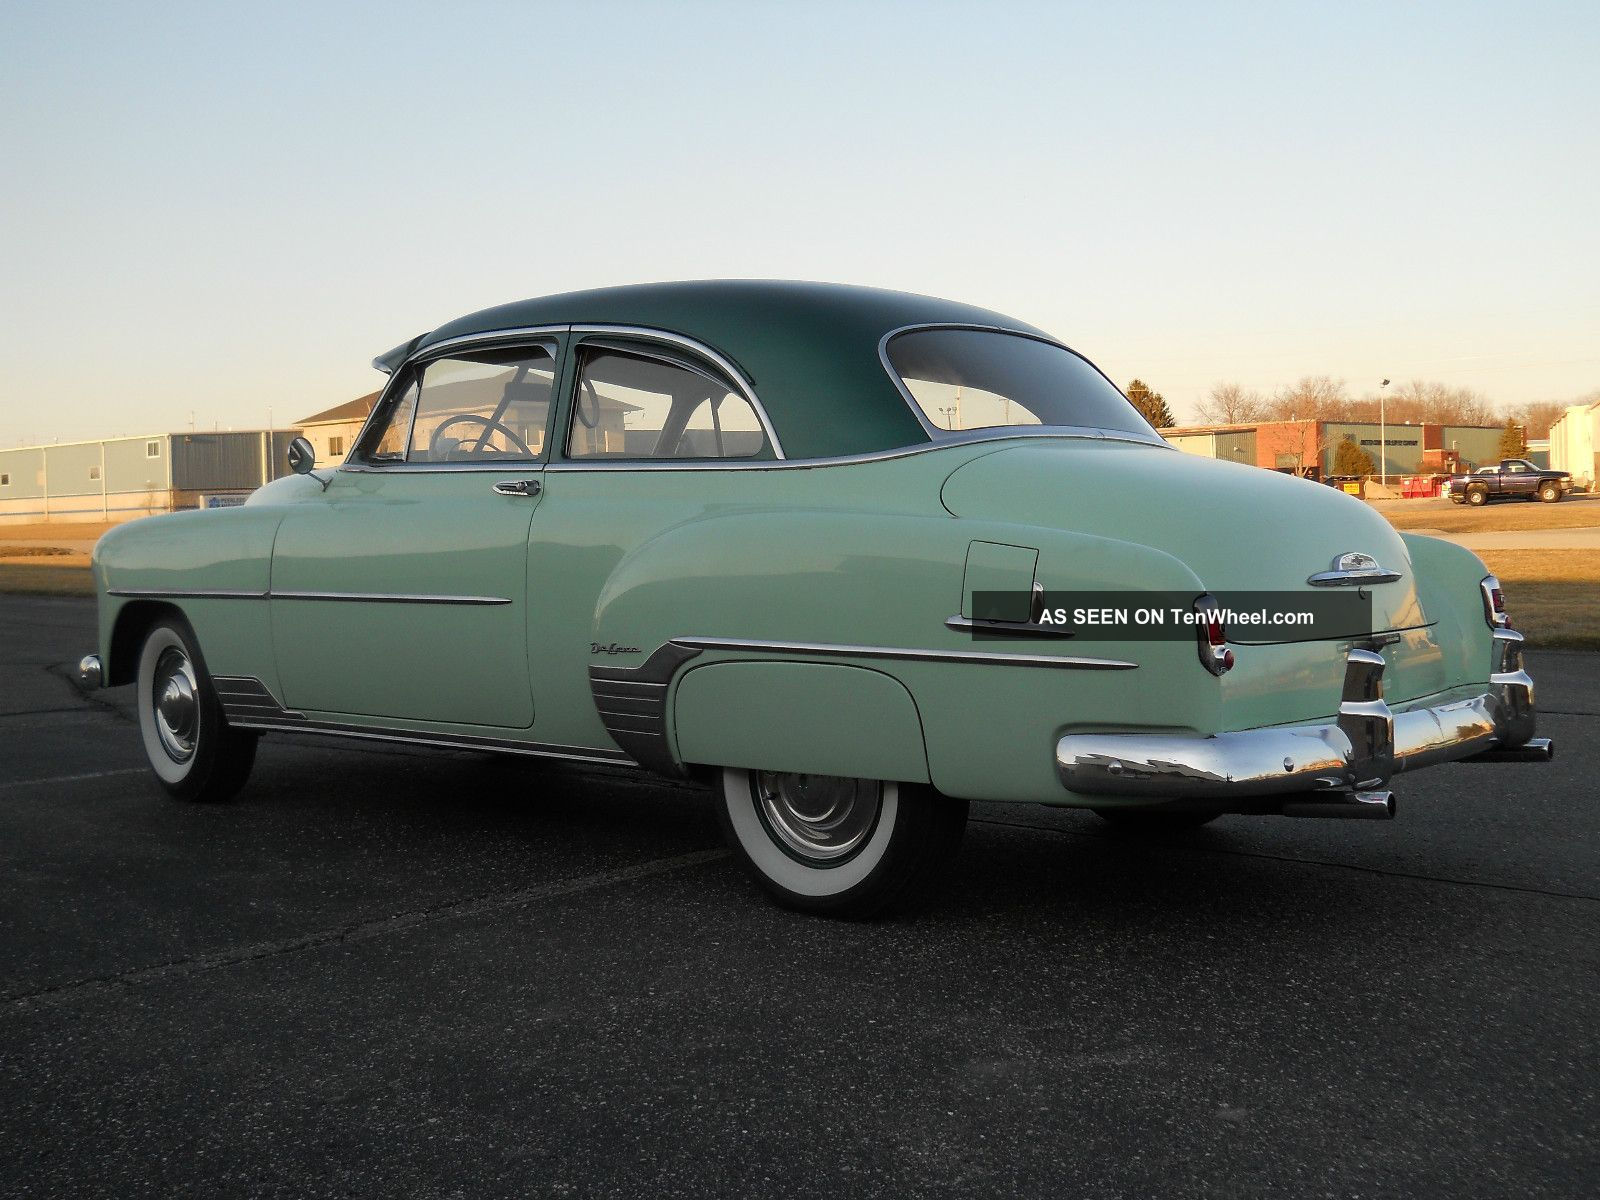 C F Fa B F E B A C moreover Chevrolet likewise Chevrolet Special Door Sedan furthermore Chevrolet Dealer Literature in addition Chevy Deluxe Excellent Unrestored Condition Garage Kept Tennessee Car Lgw. on 1952 chevy styleline deluxe 2 door sedan